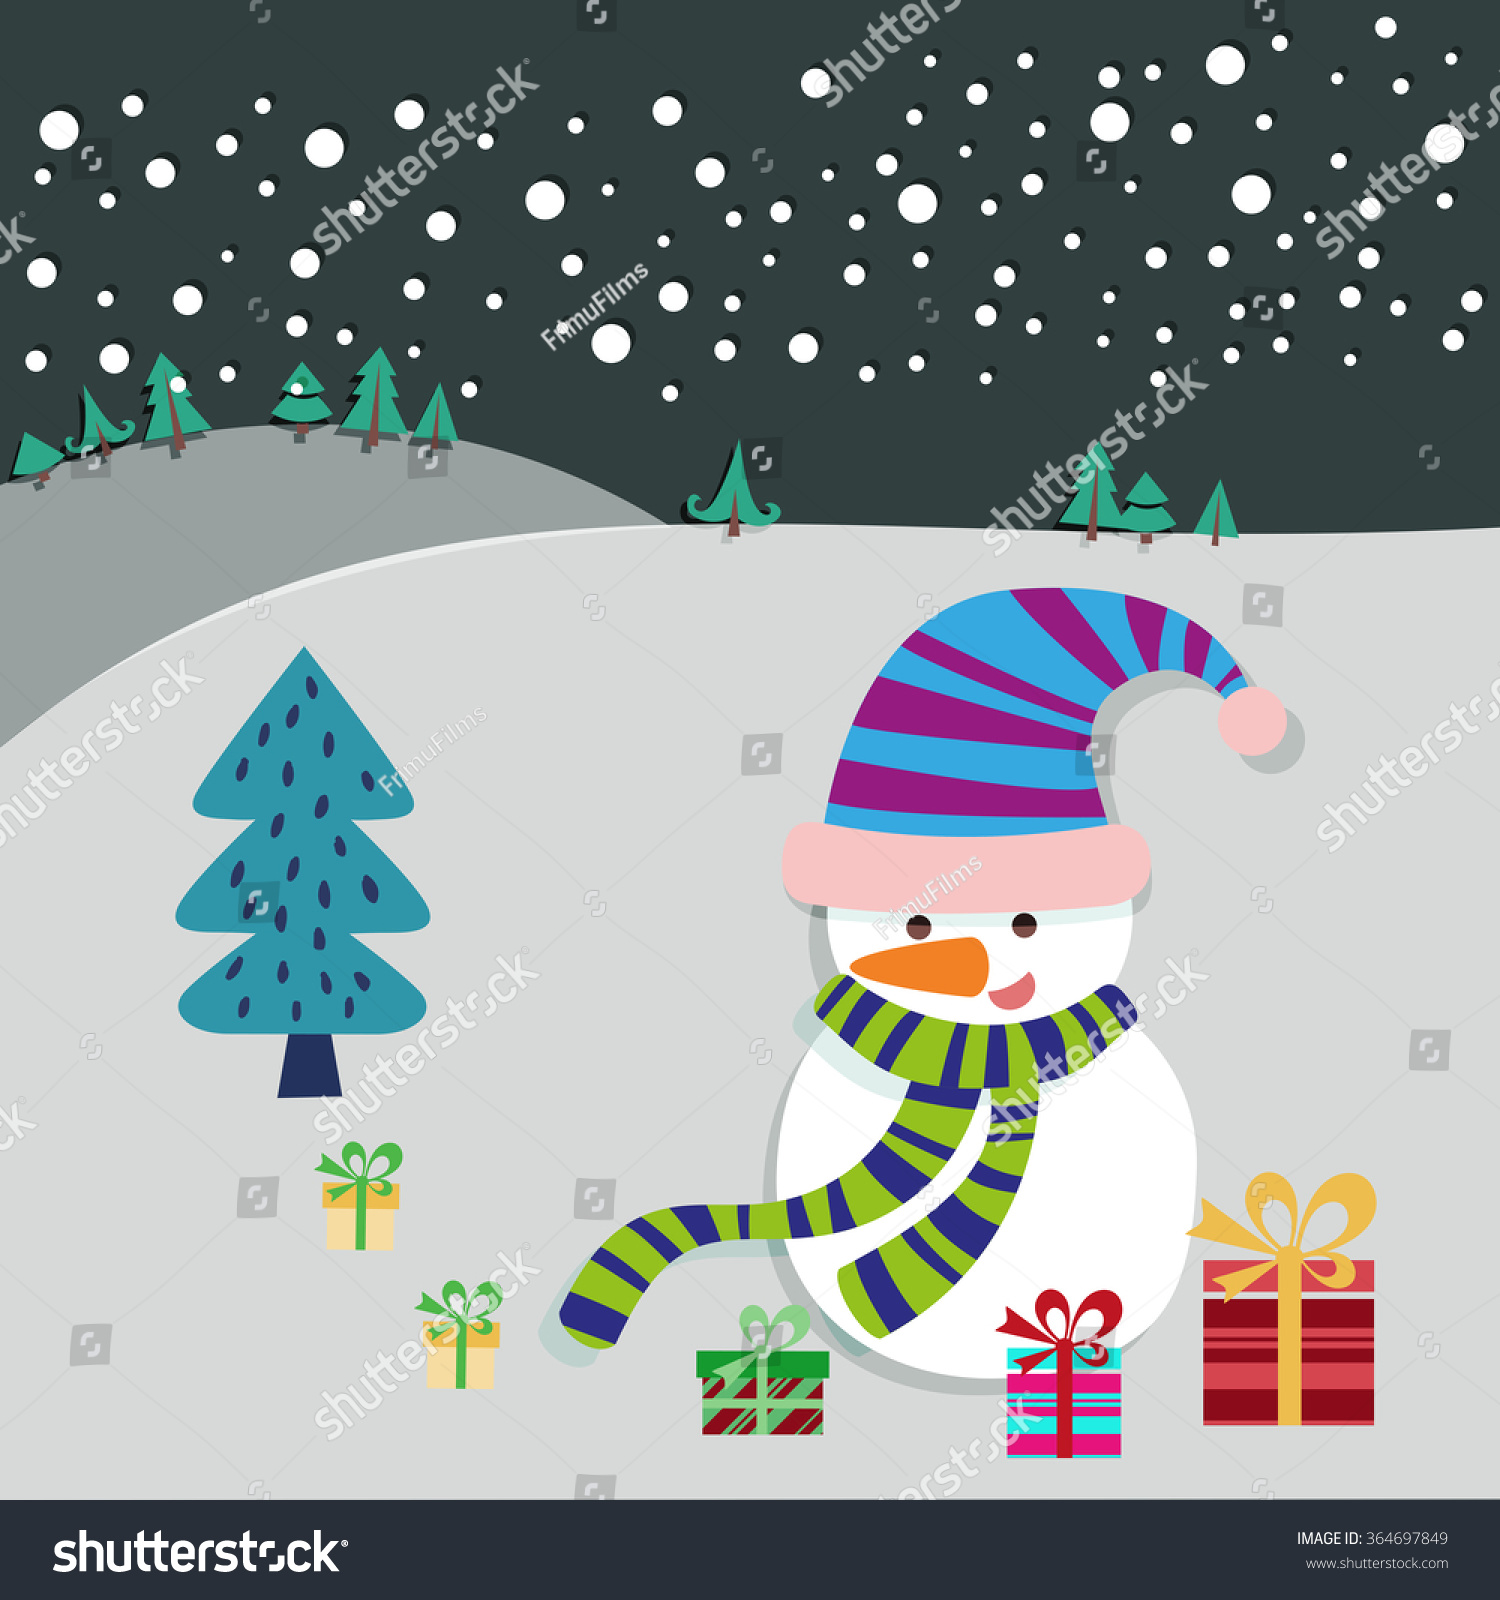 Christmas Eve Landscape Snowman Xmas Tree Stock Vector (Royalty Free ...